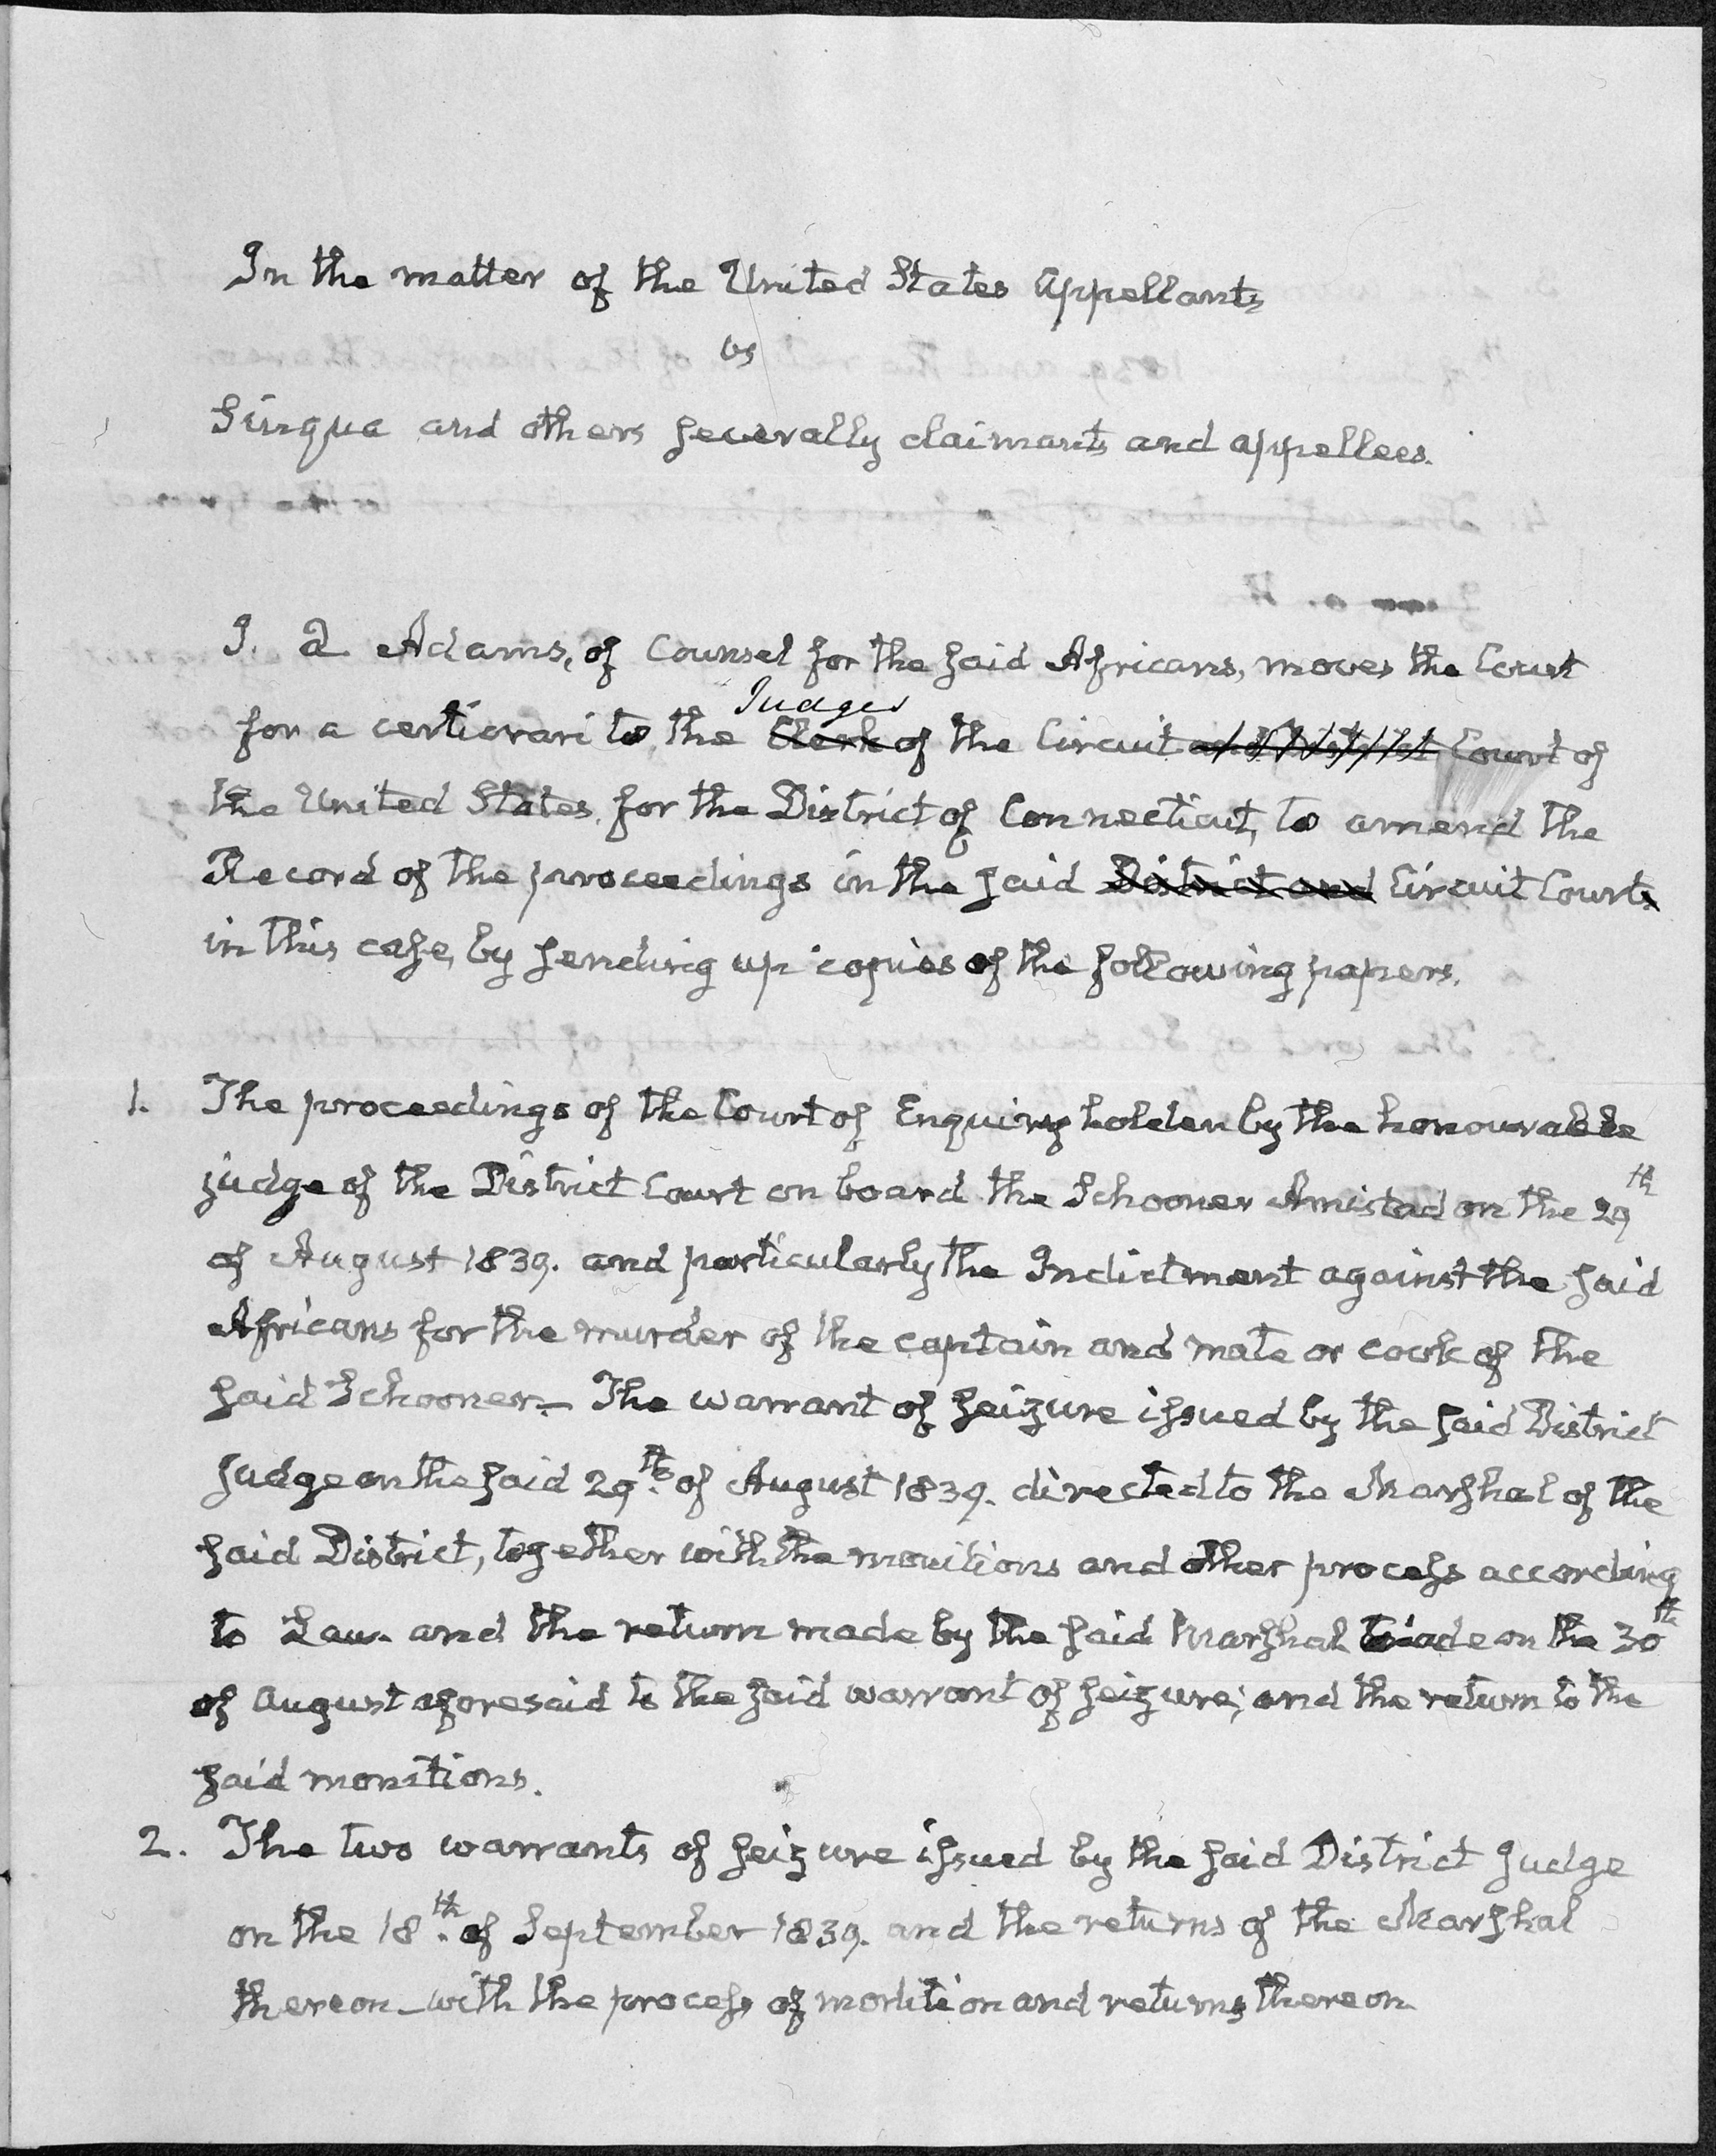 john adams essay questions Download thesis statement on john adams presidency in our database or order an original thesis paper that will be written by one of our staff writers and delivered.